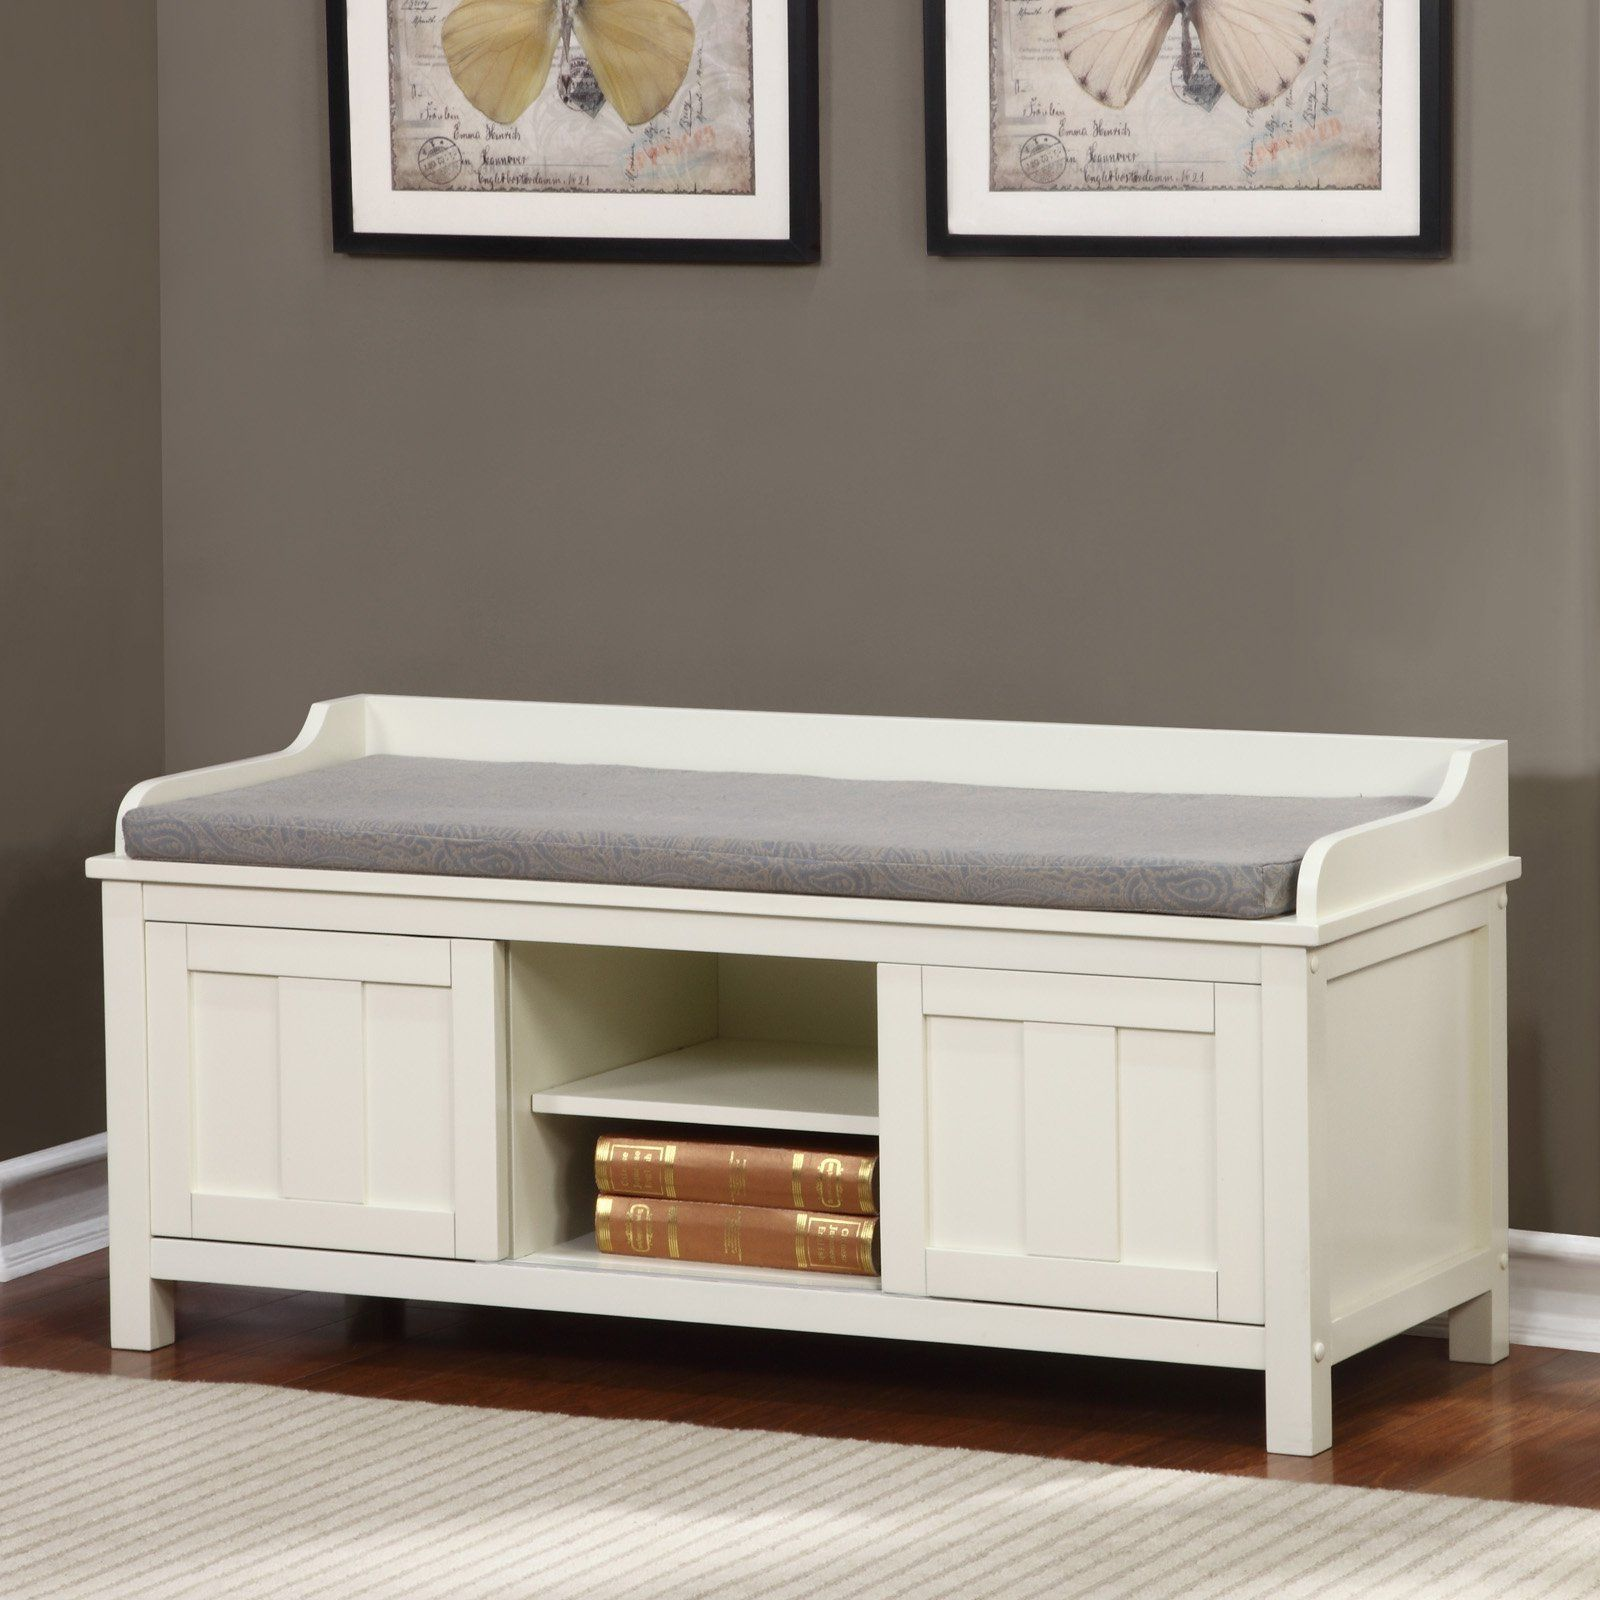 Linon Lakeville Indoor Storage Bench - The Linon Lakeville Indoor Storage Bench gives you an added & Linon Lakeville Indoor Storage Bench - The Linon Lakeville Indoor ...